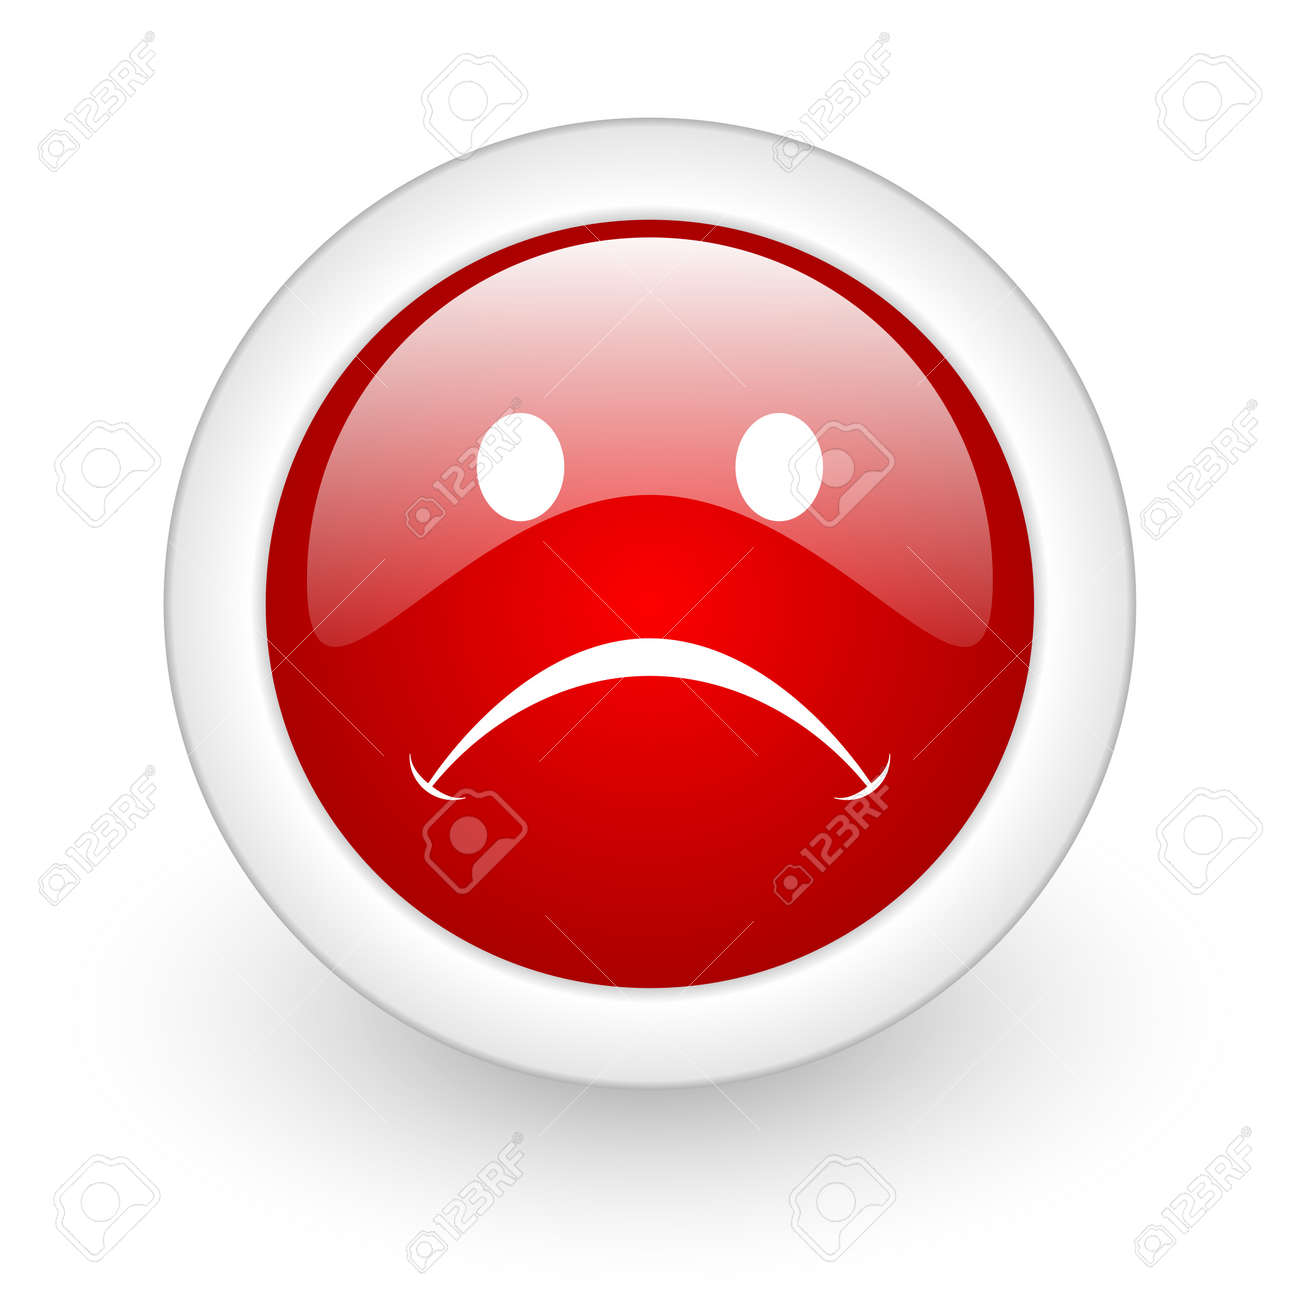 cry red circle glossy web icon on white background Stock Photo - 17977921